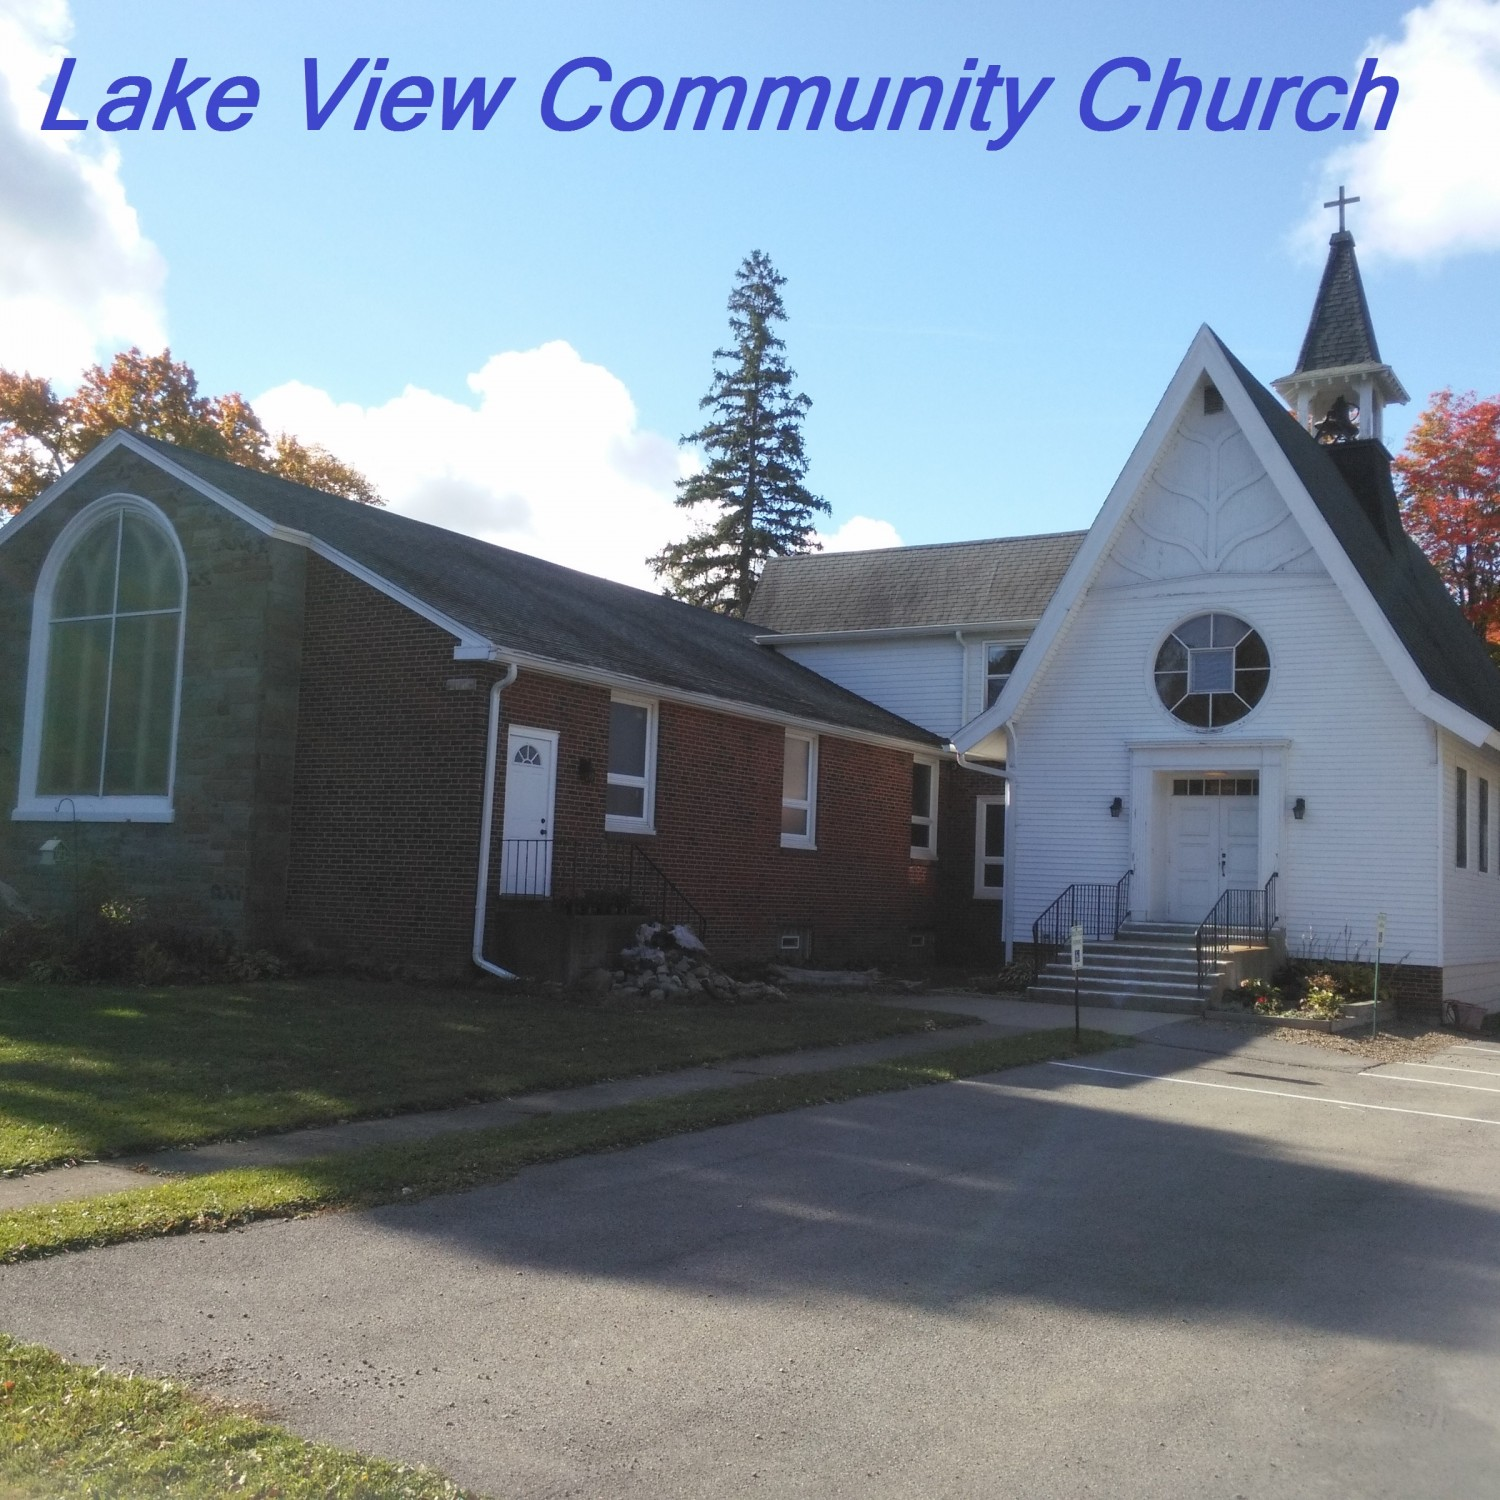 Lake View Community Church